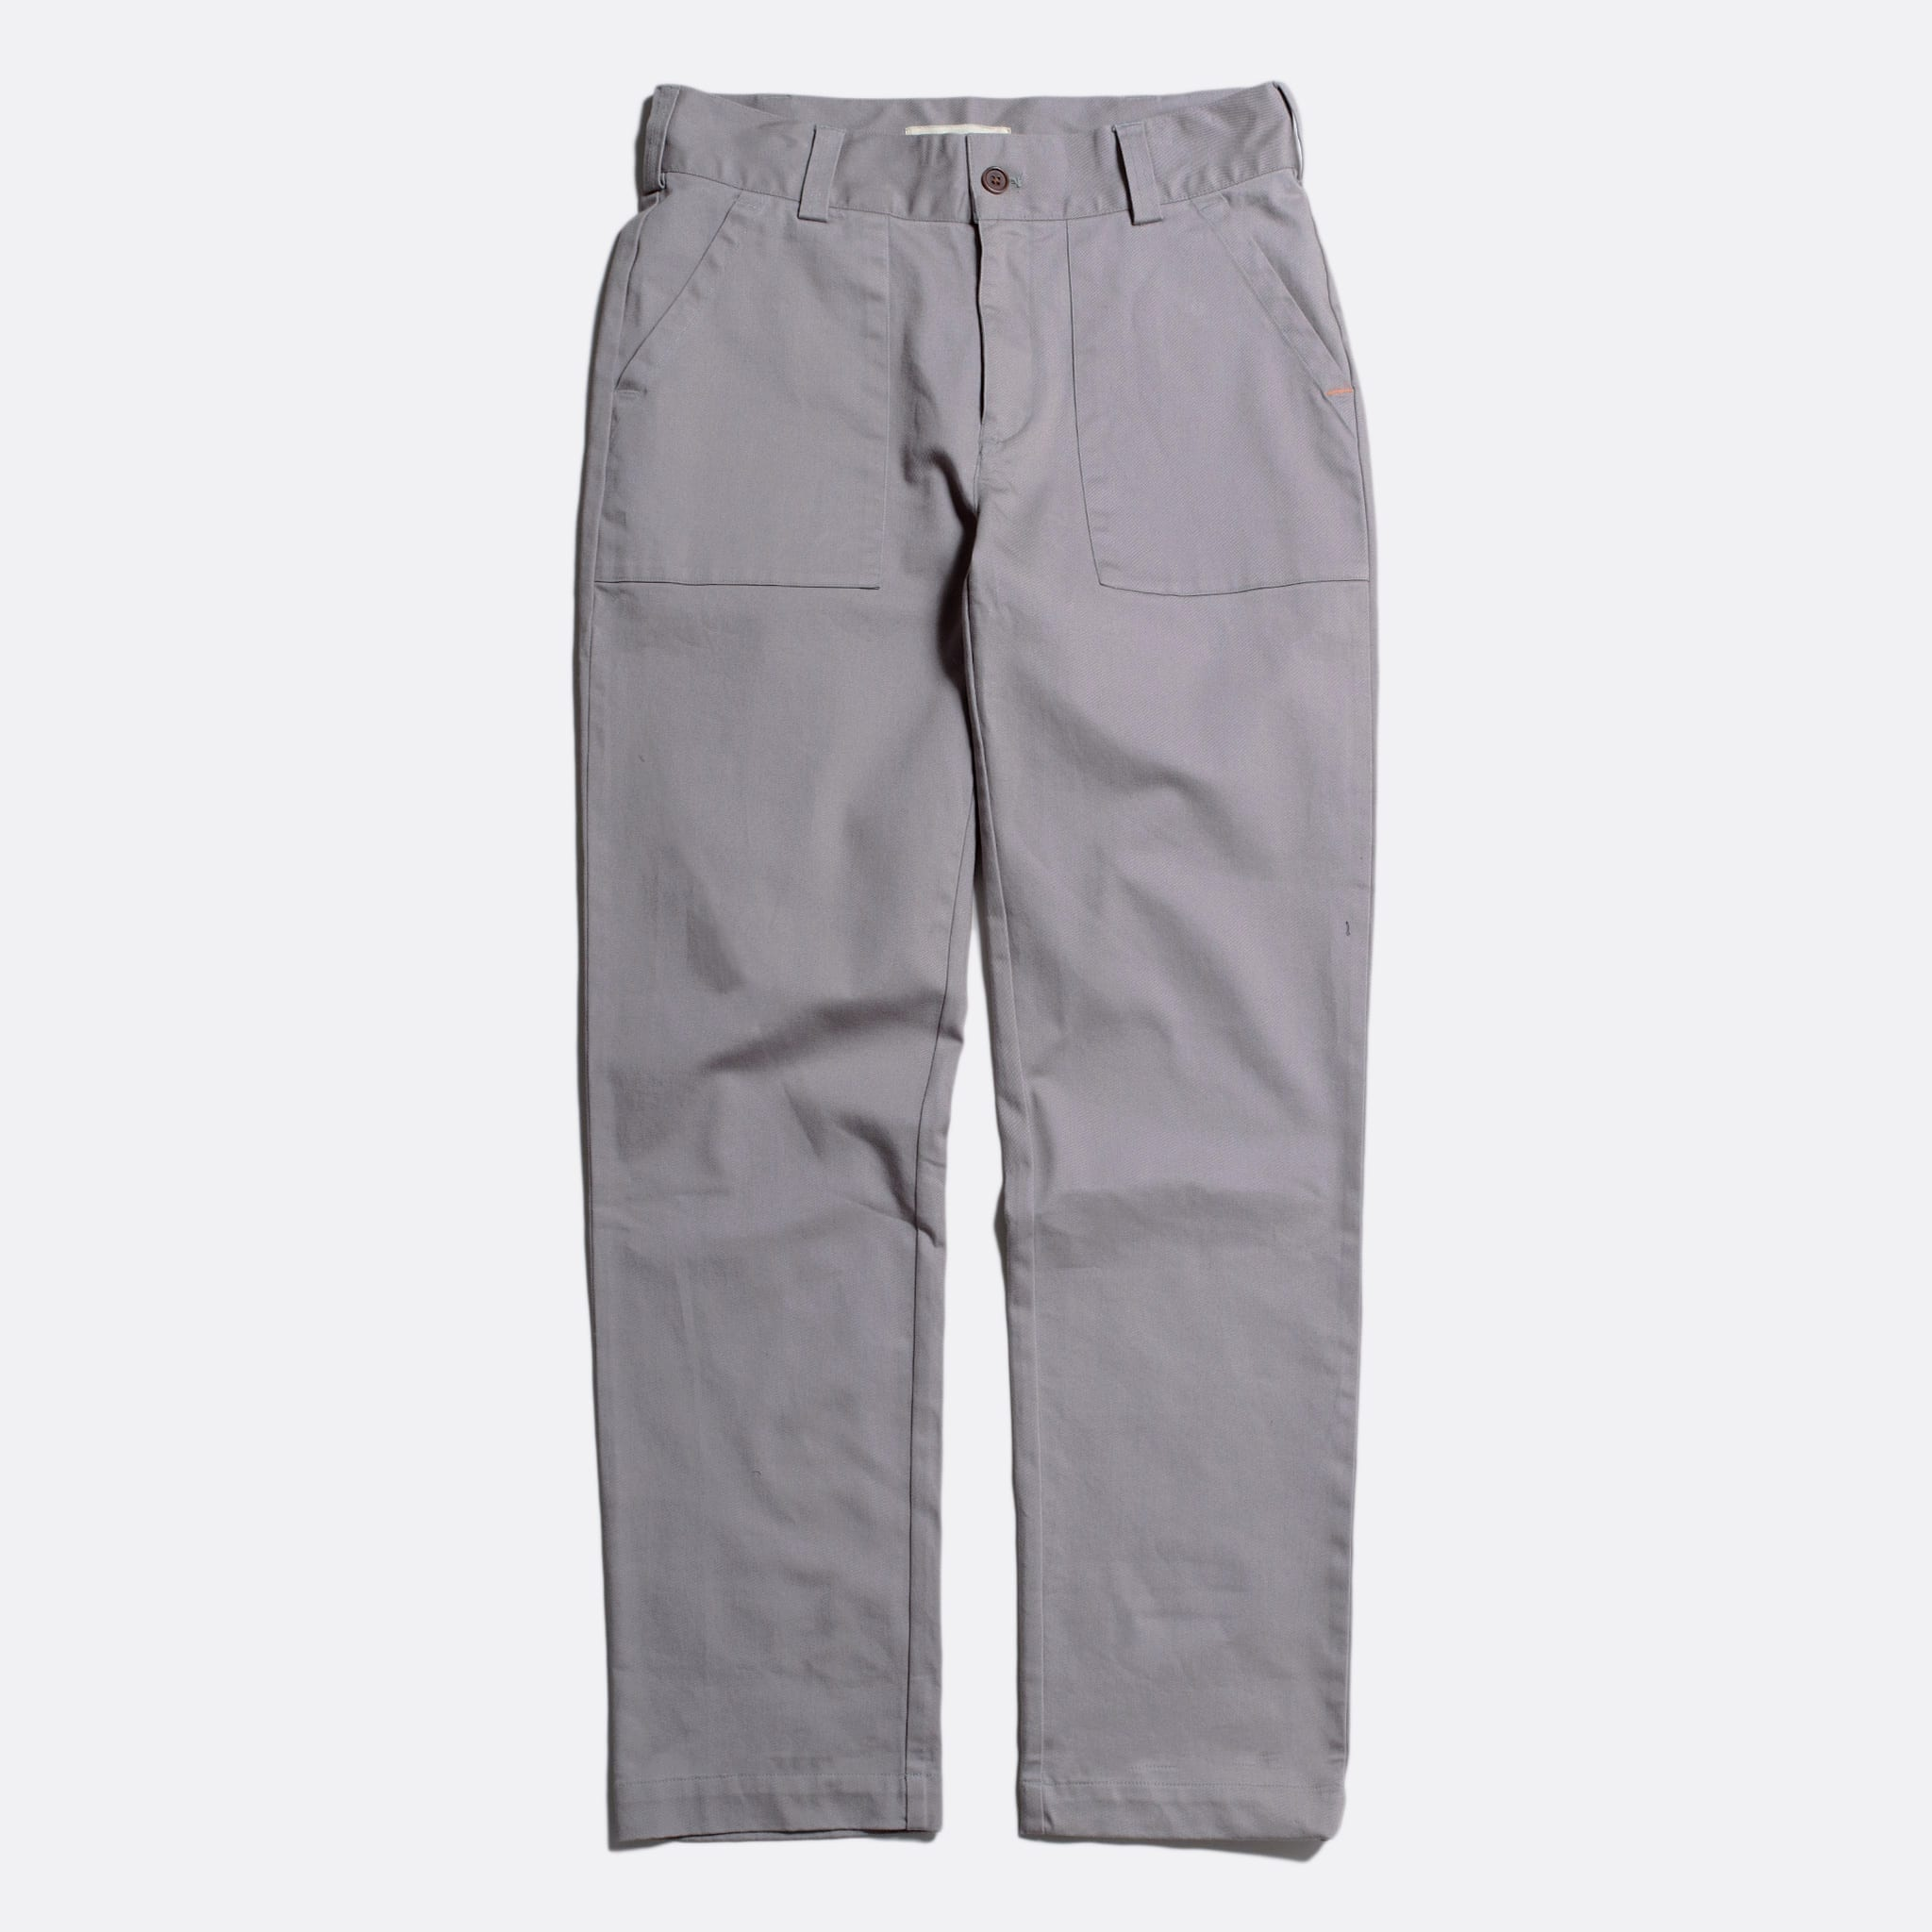 Far Afield Coup Trousers a Cloudburst Grey Organic Cotton Twill FabricClassic Work